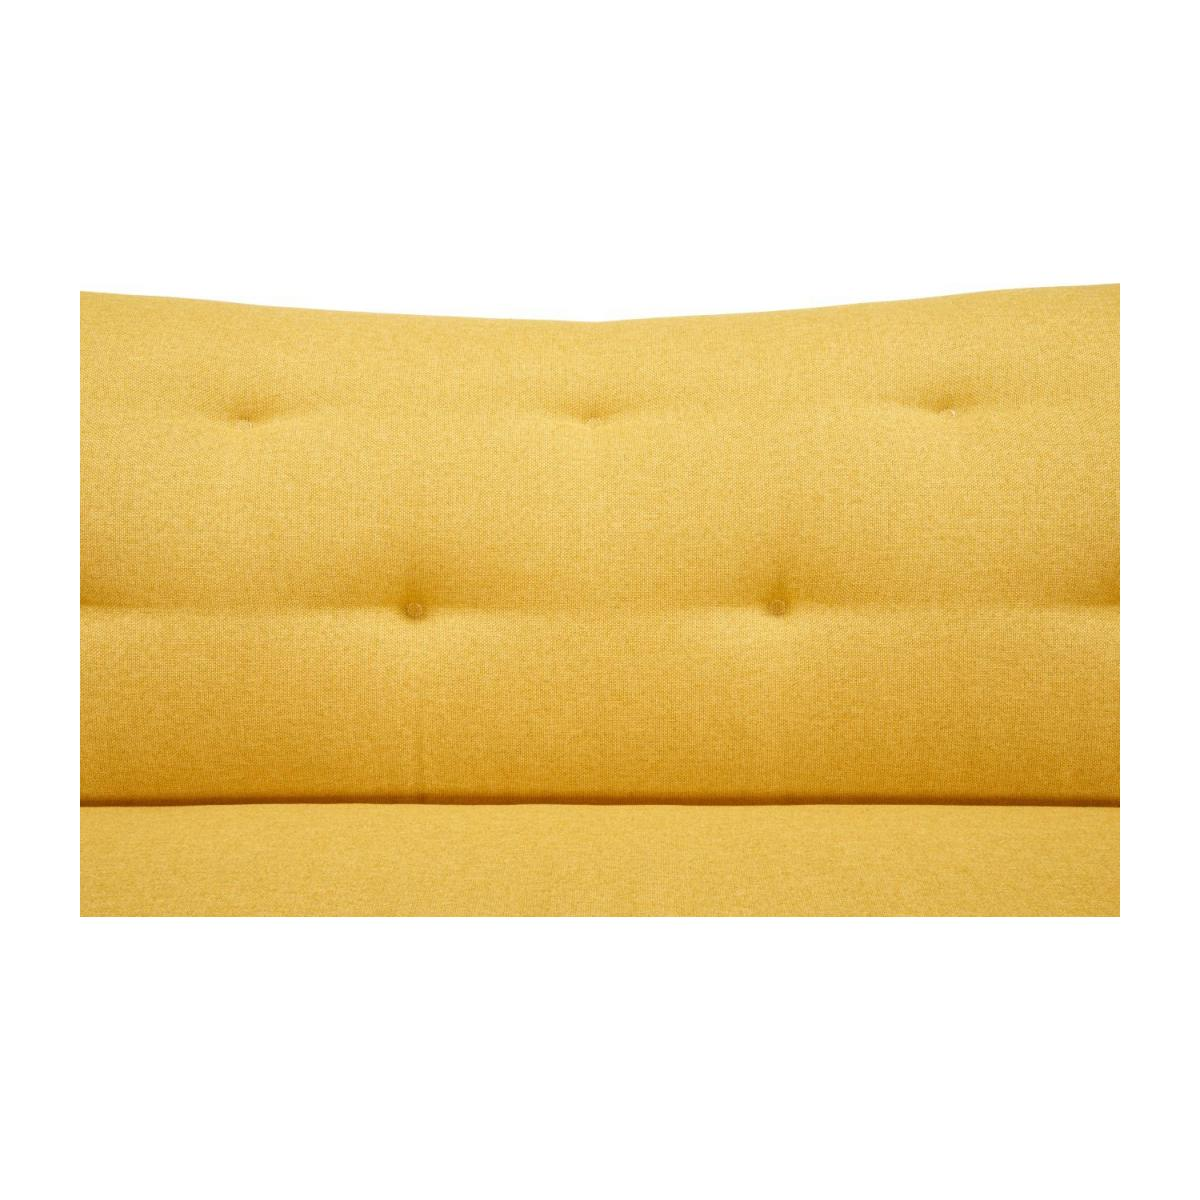 3-seat sofa made of fabric, yellow n°9